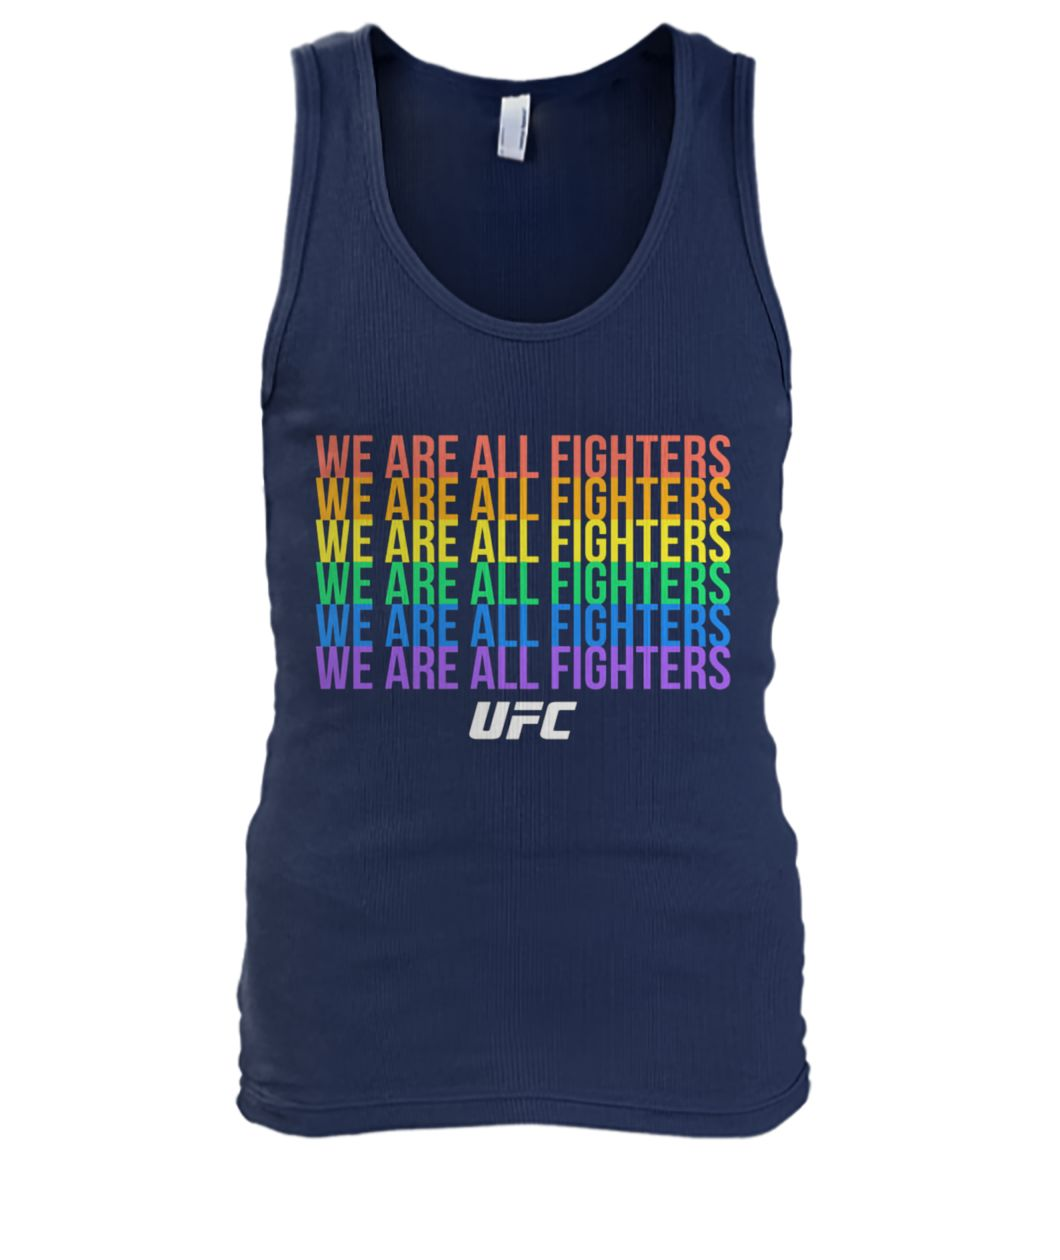 UFC we are all fighters LGBTQ men's tank top